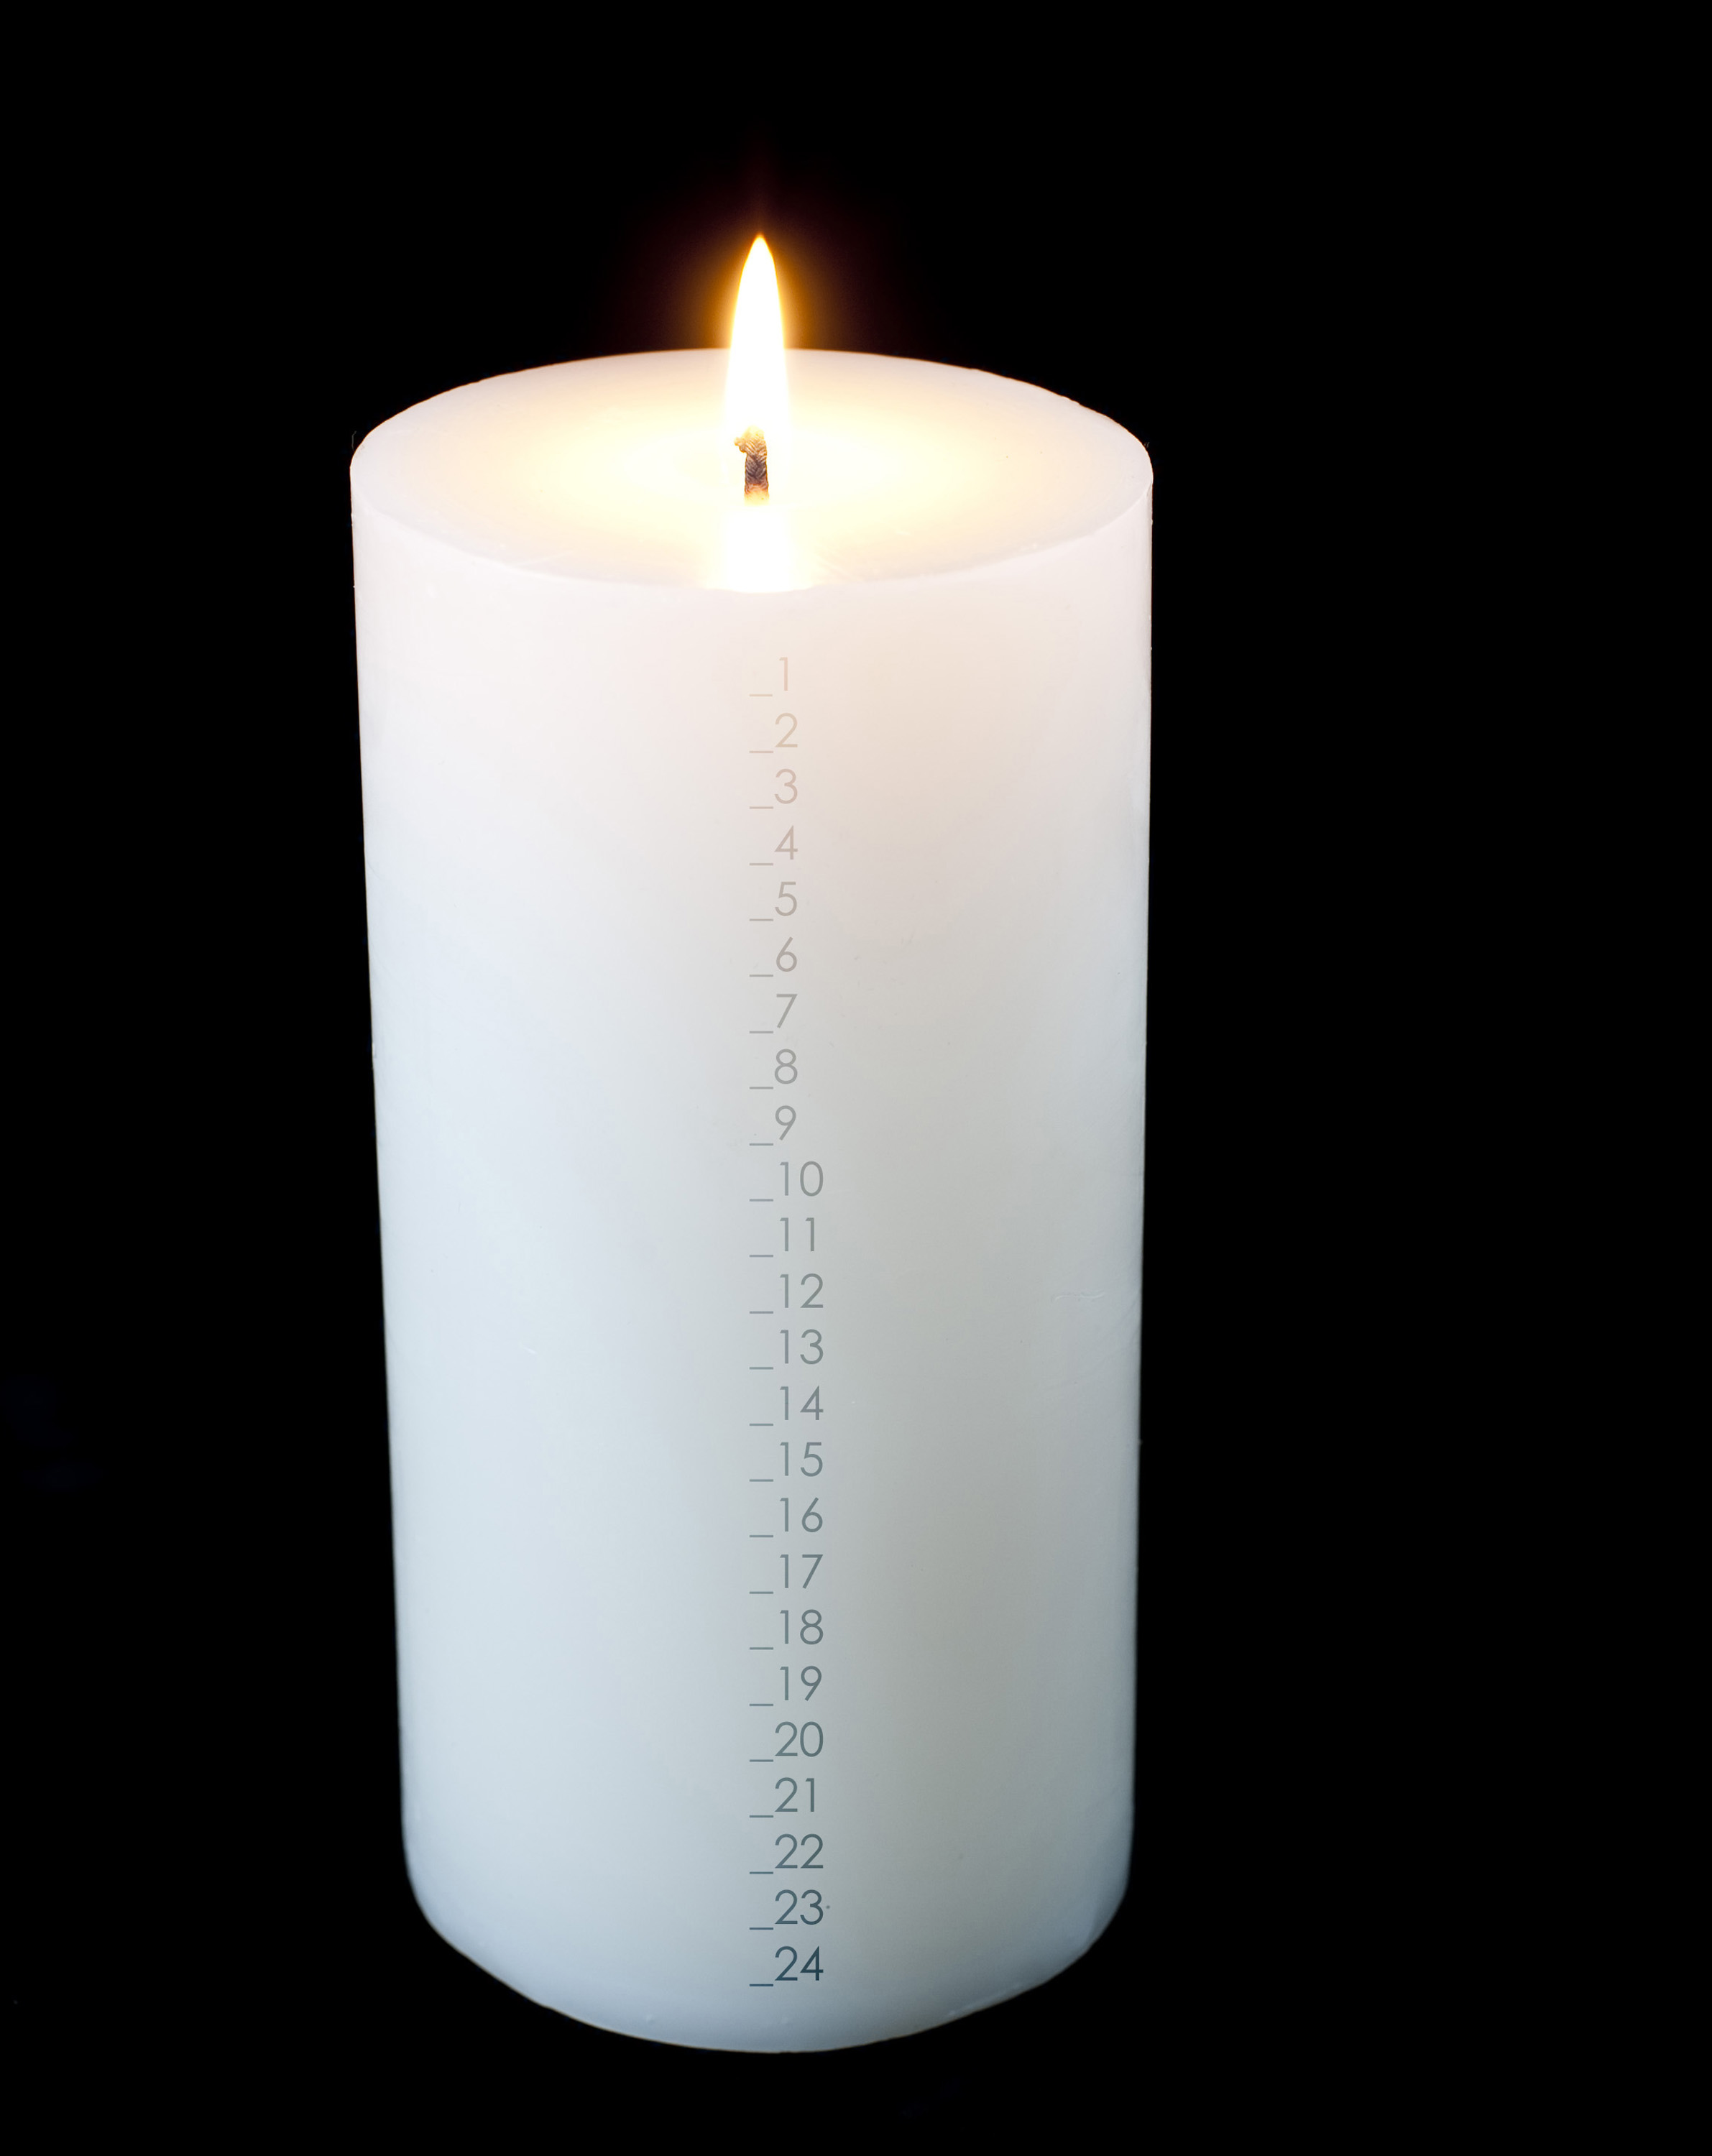 Christmas Candle Black And White Photo Of Advent Countdown Candle Free Christmas Images